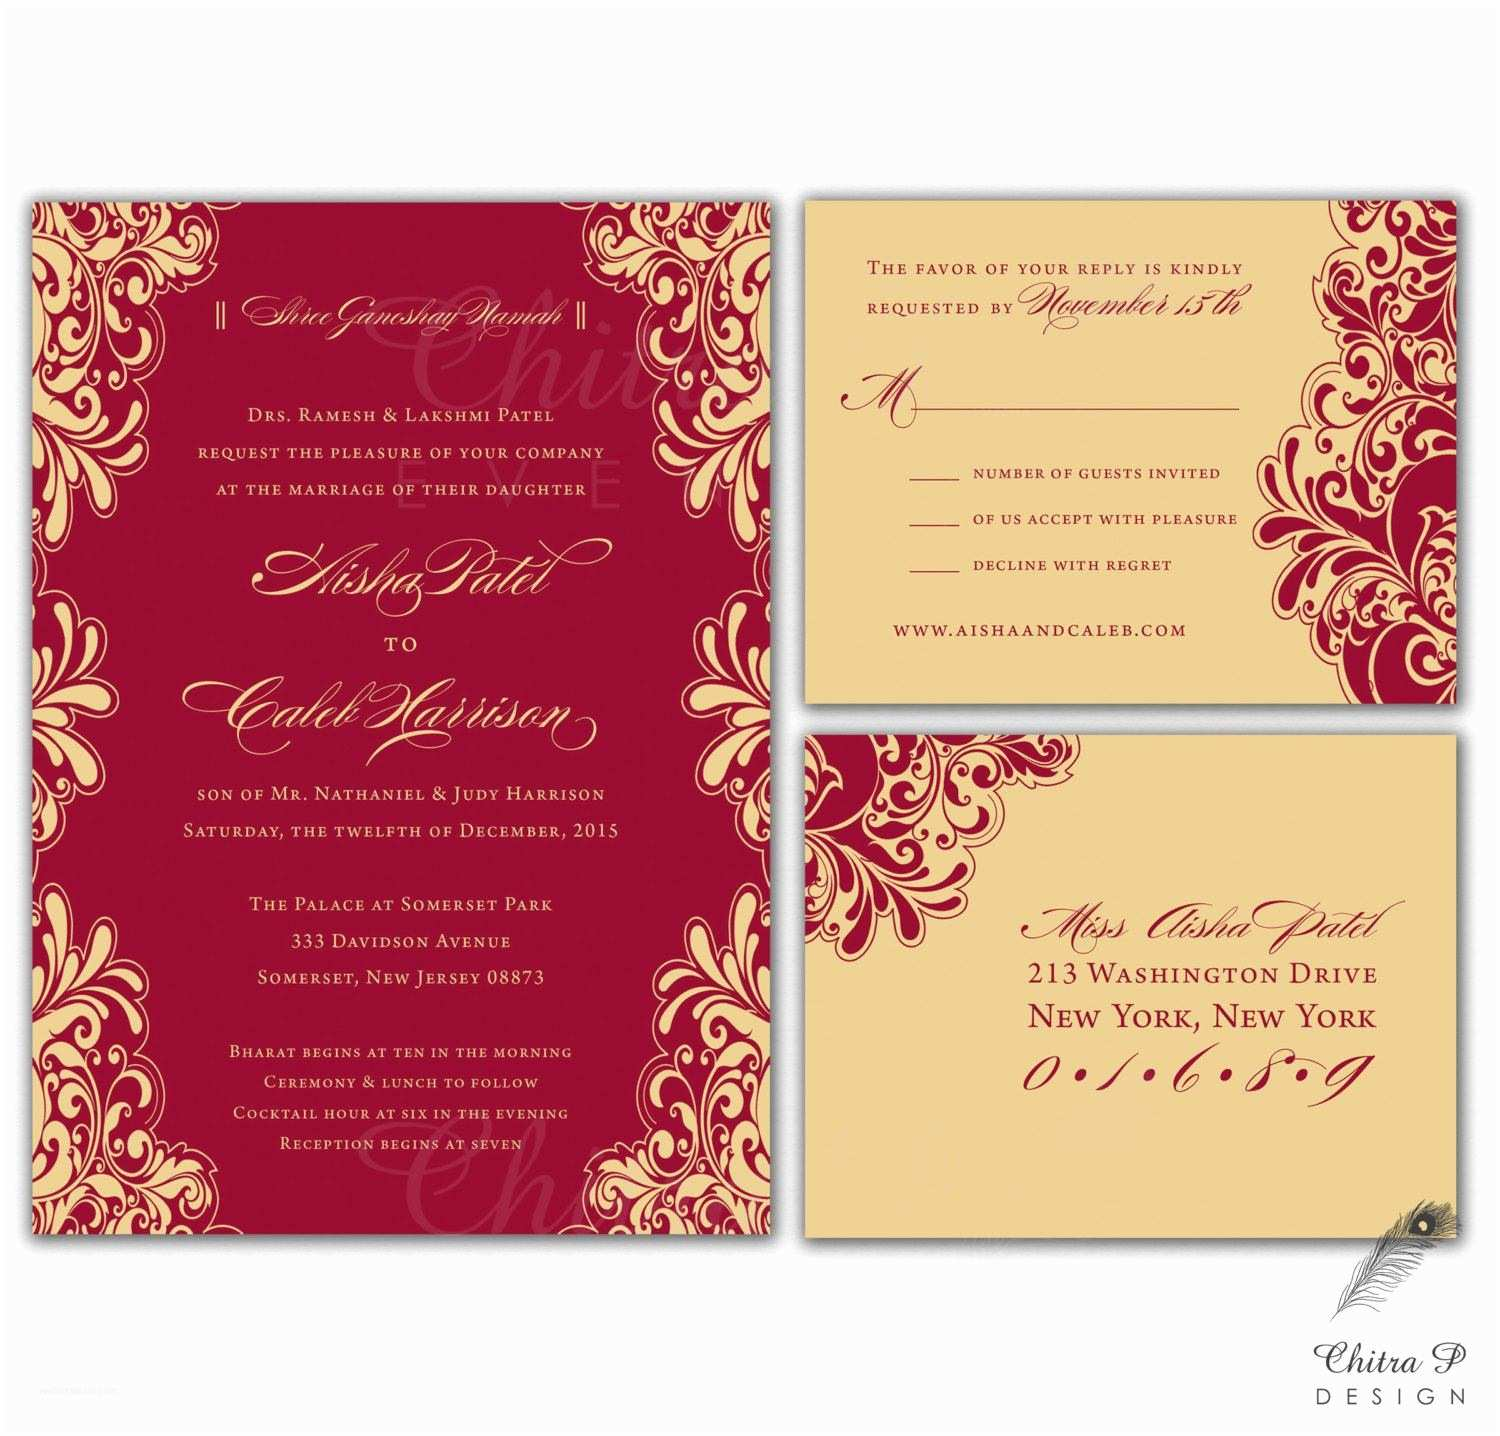 Wedding Invitations and Response Cards All In One Wedding Invitation Wedding Invitations with Response